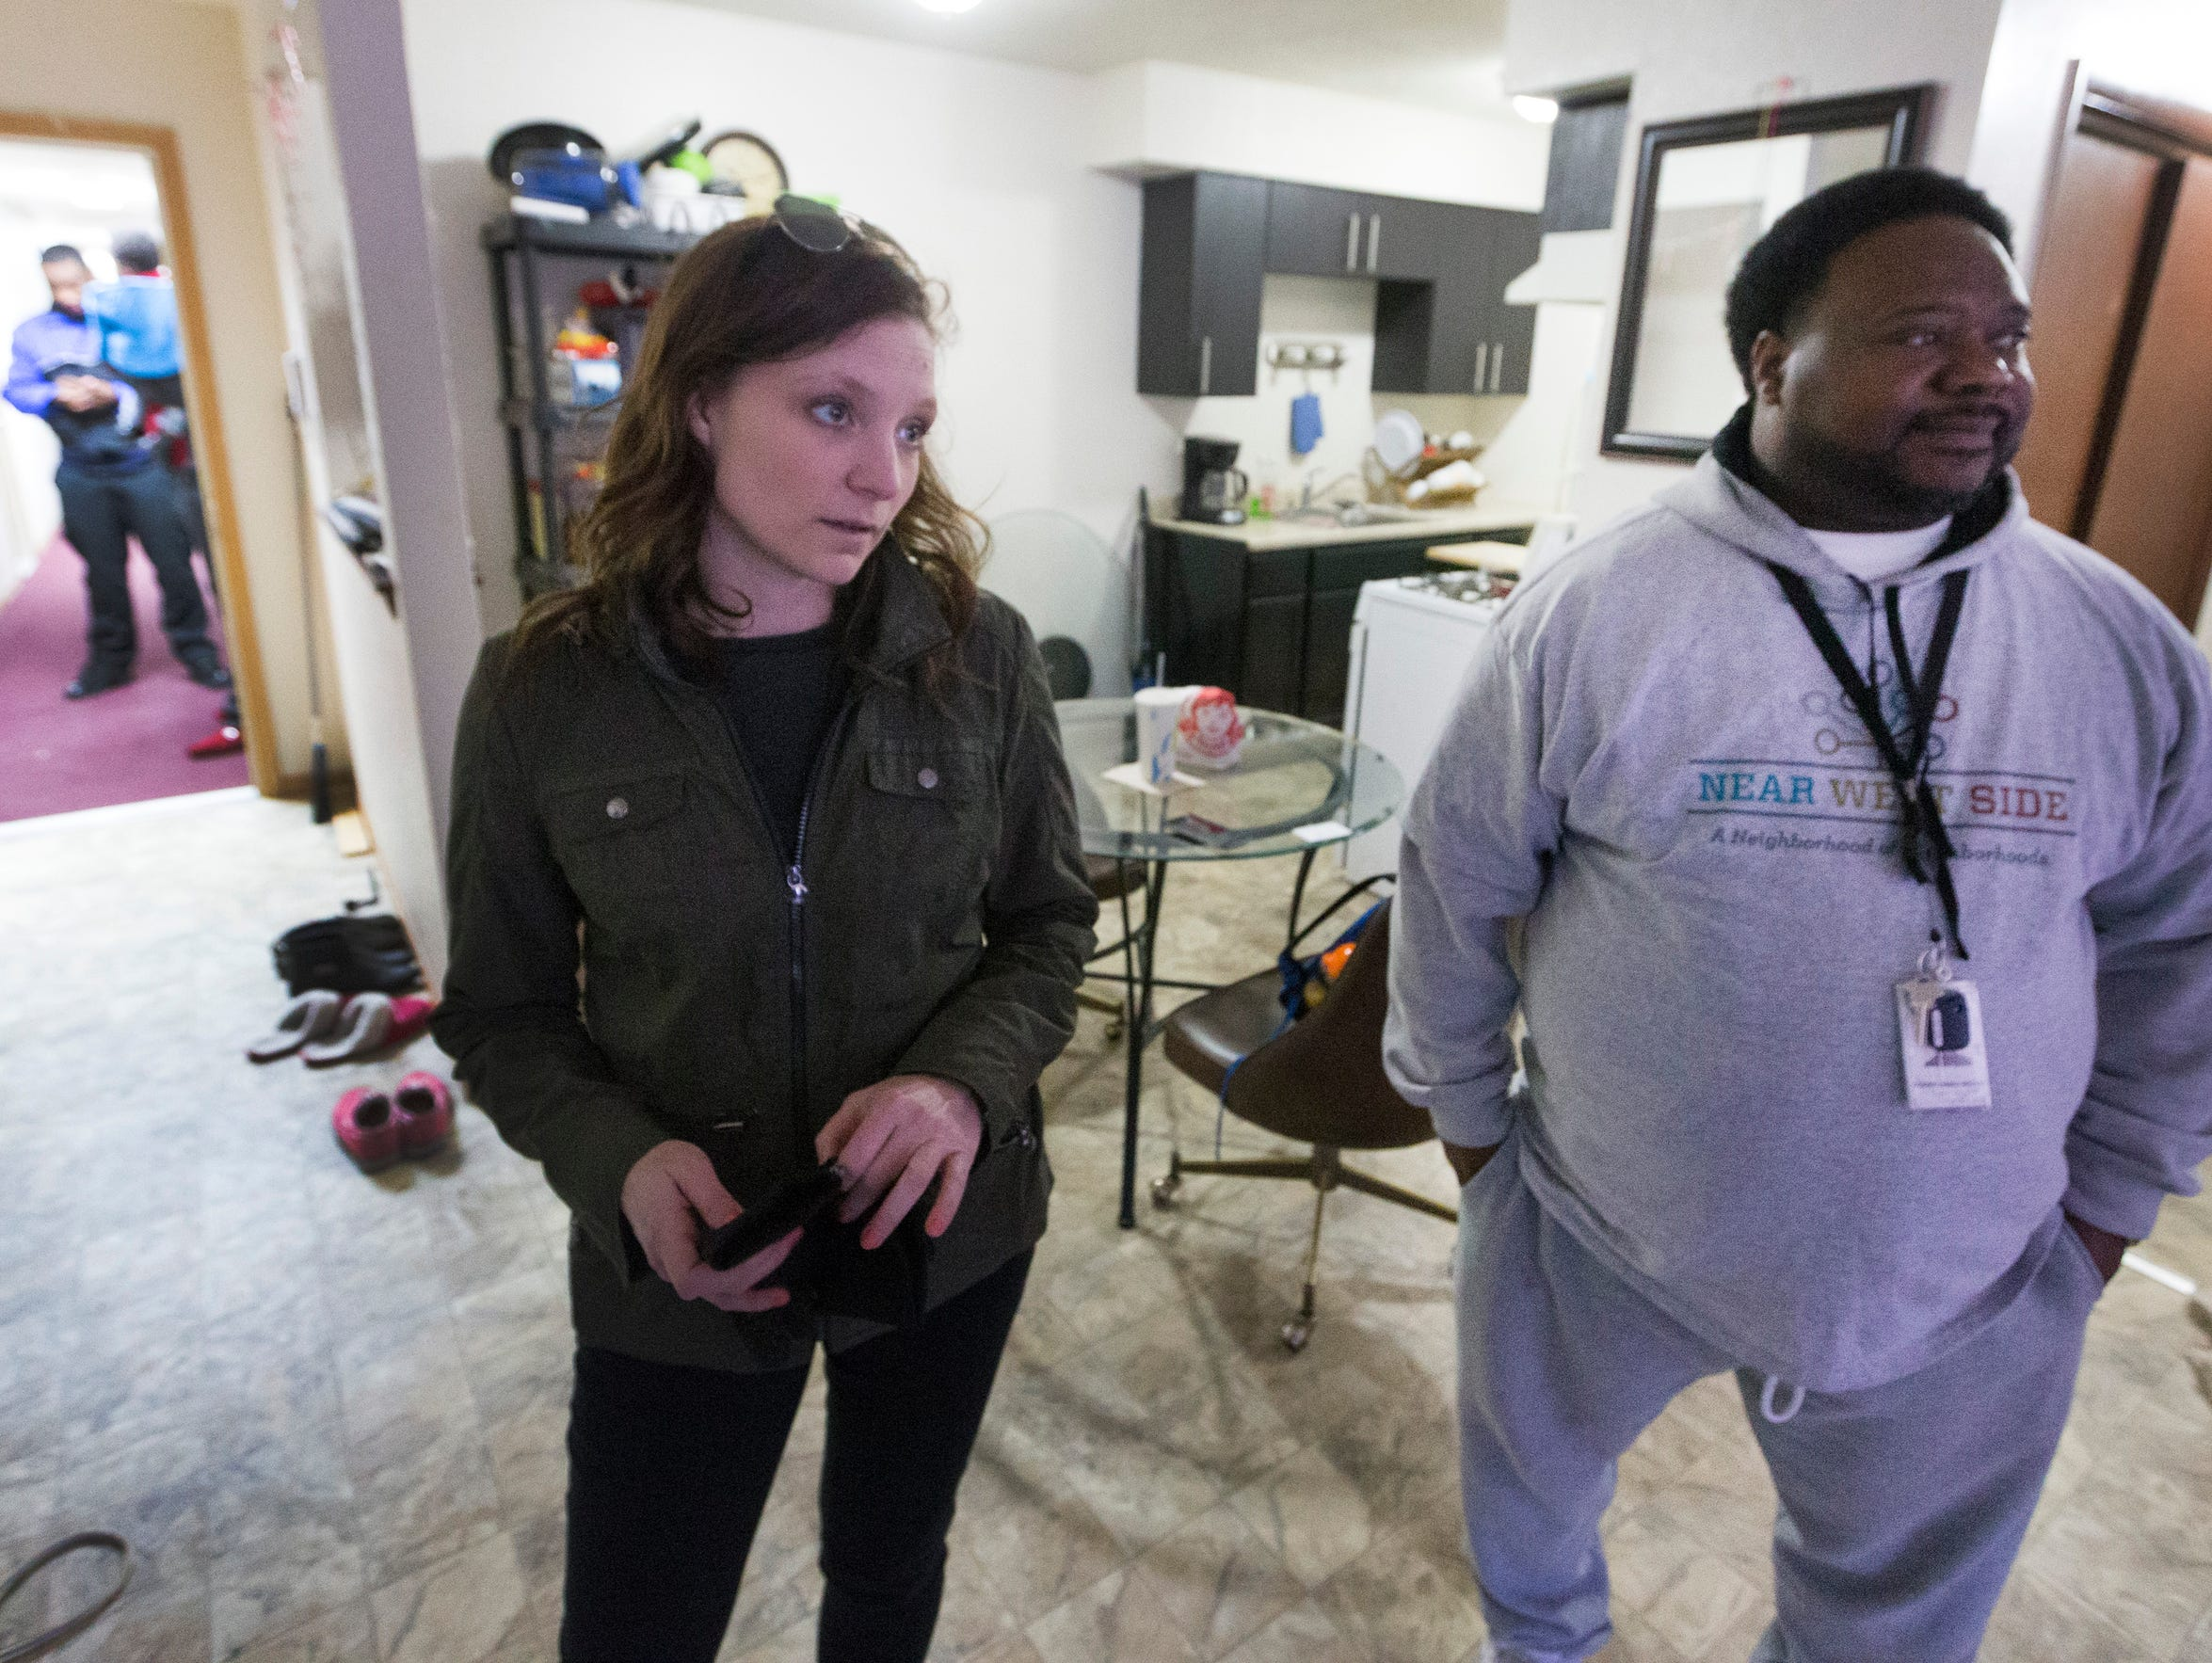 """Assistant district attorney Catelin Ringersma (left) and Safe & Sound community prosecution unit coordinator Bobby McQuay Jr. meet with a tenant who has been having problems with her rental unit during a """"blight sweep"""" March 14 on the near west side of Milwaukee."""